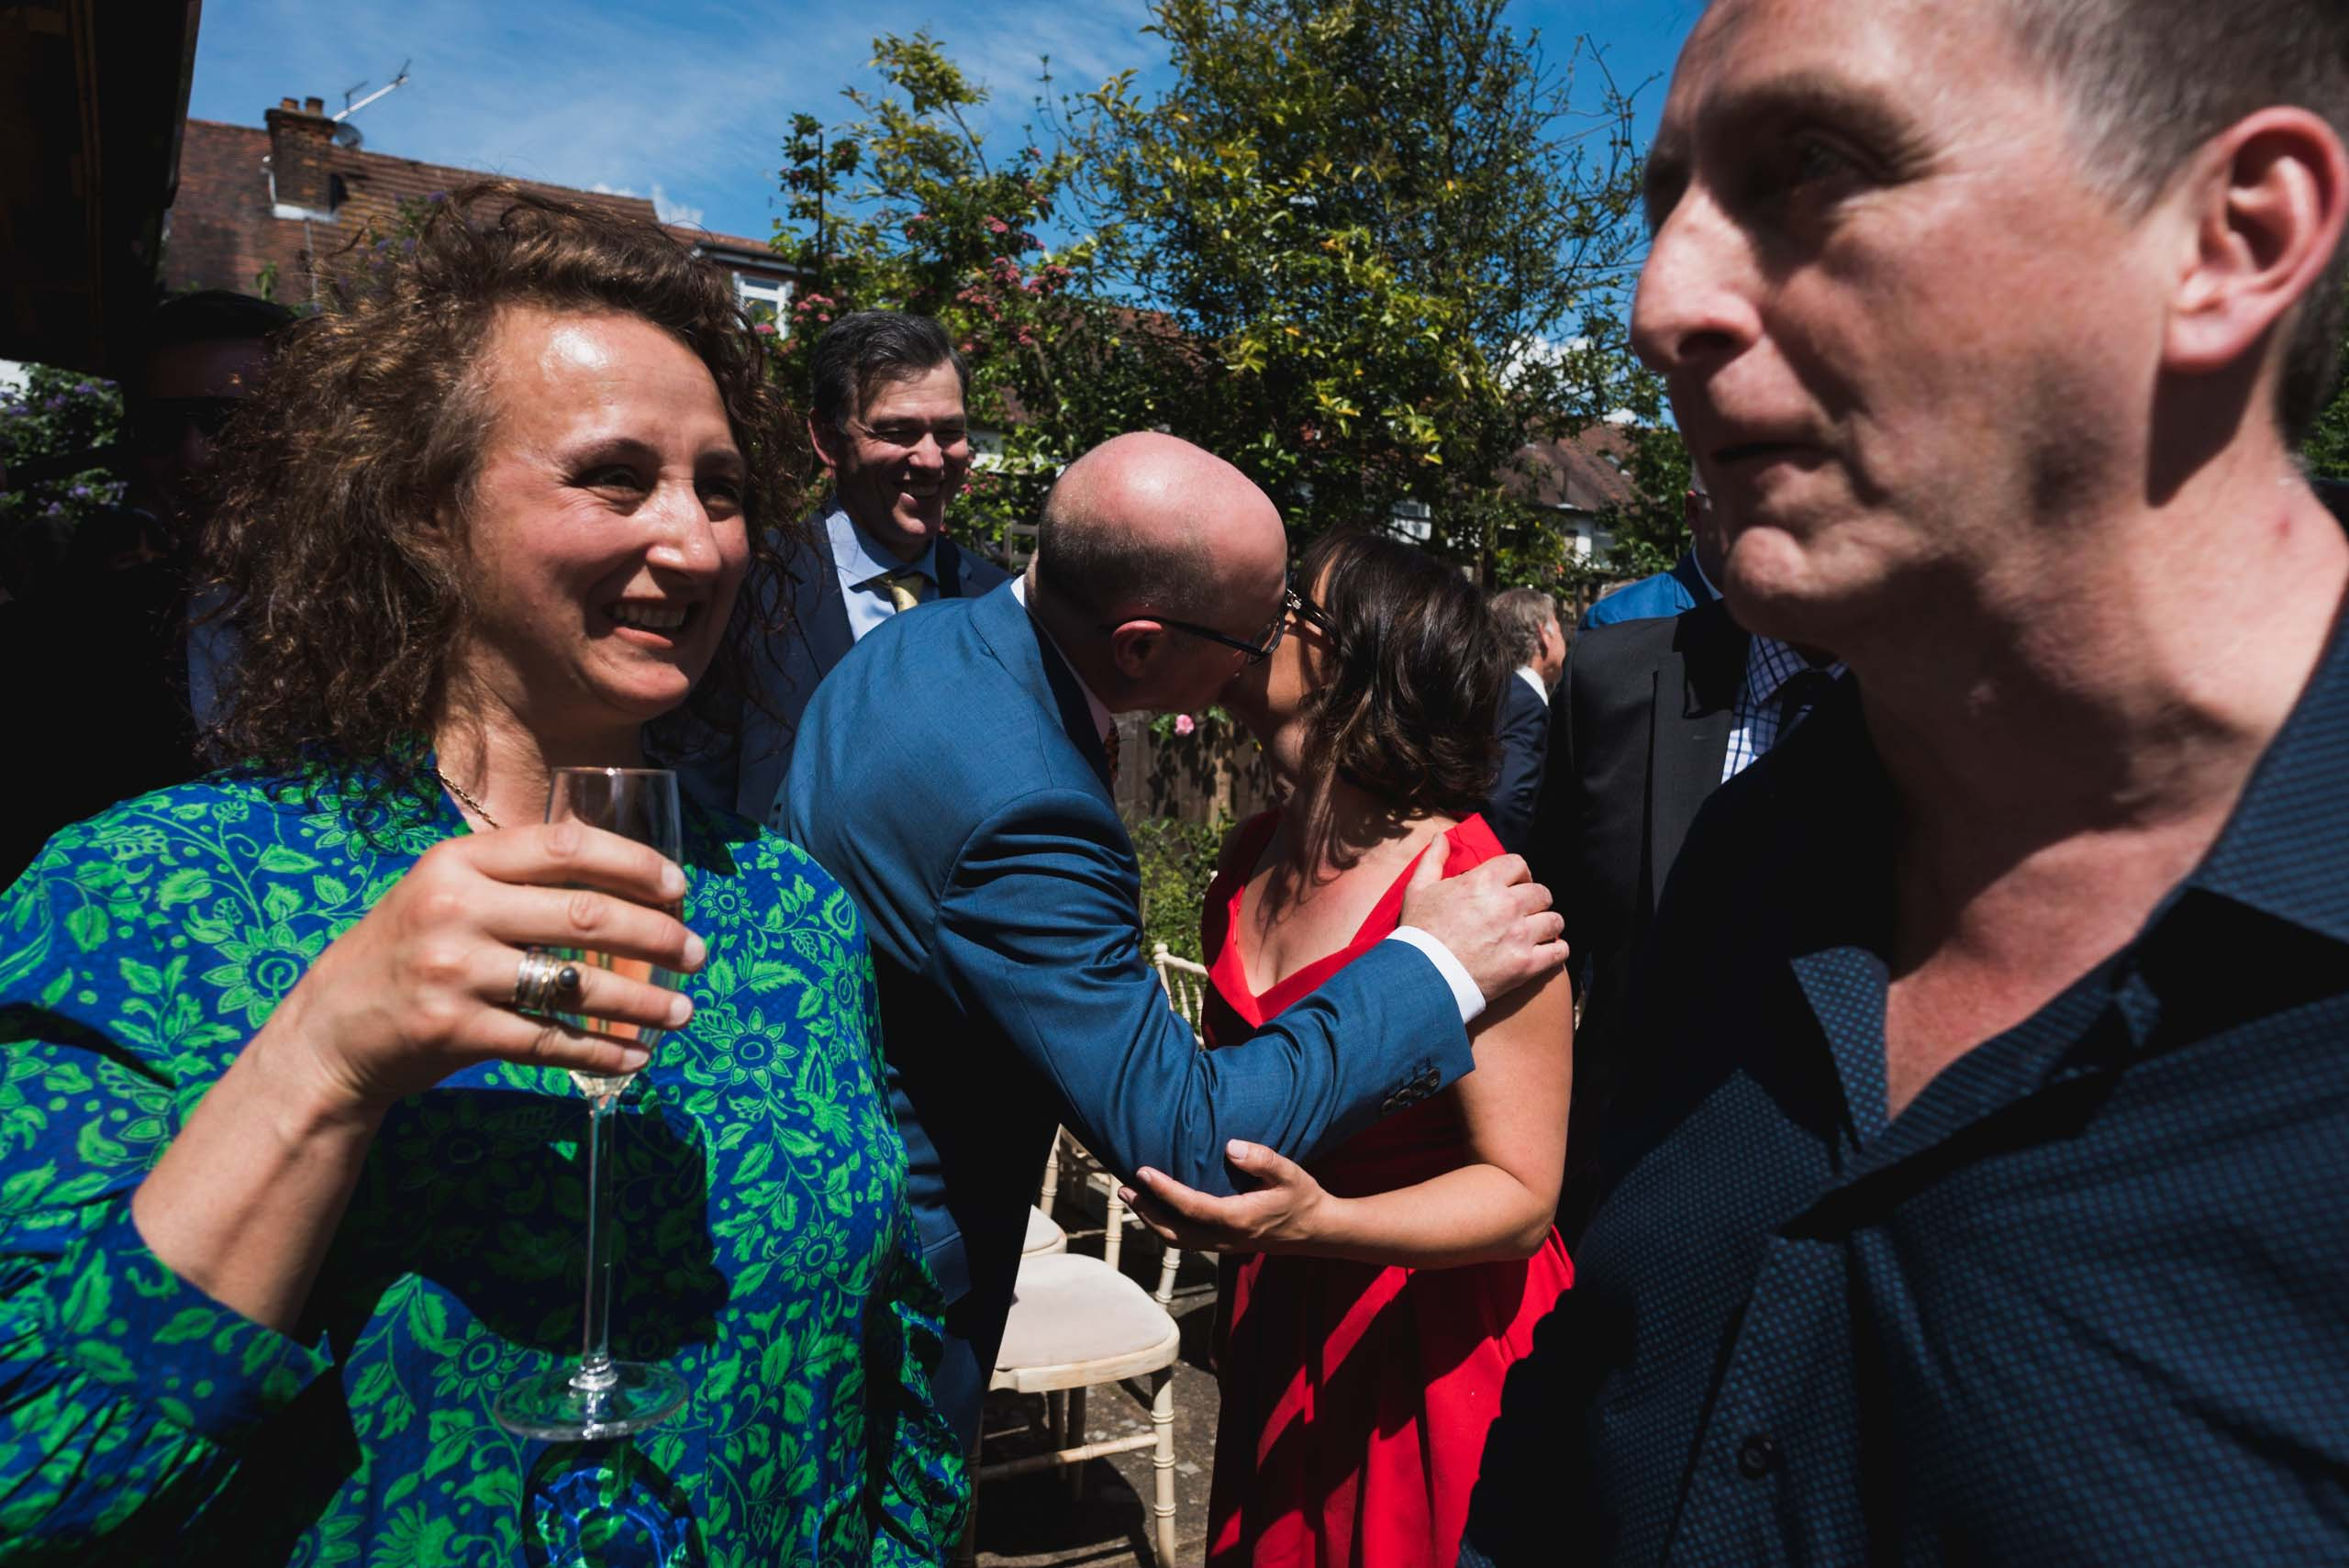 carine bea photography, guest in a wedding at back garden, documentary photographer